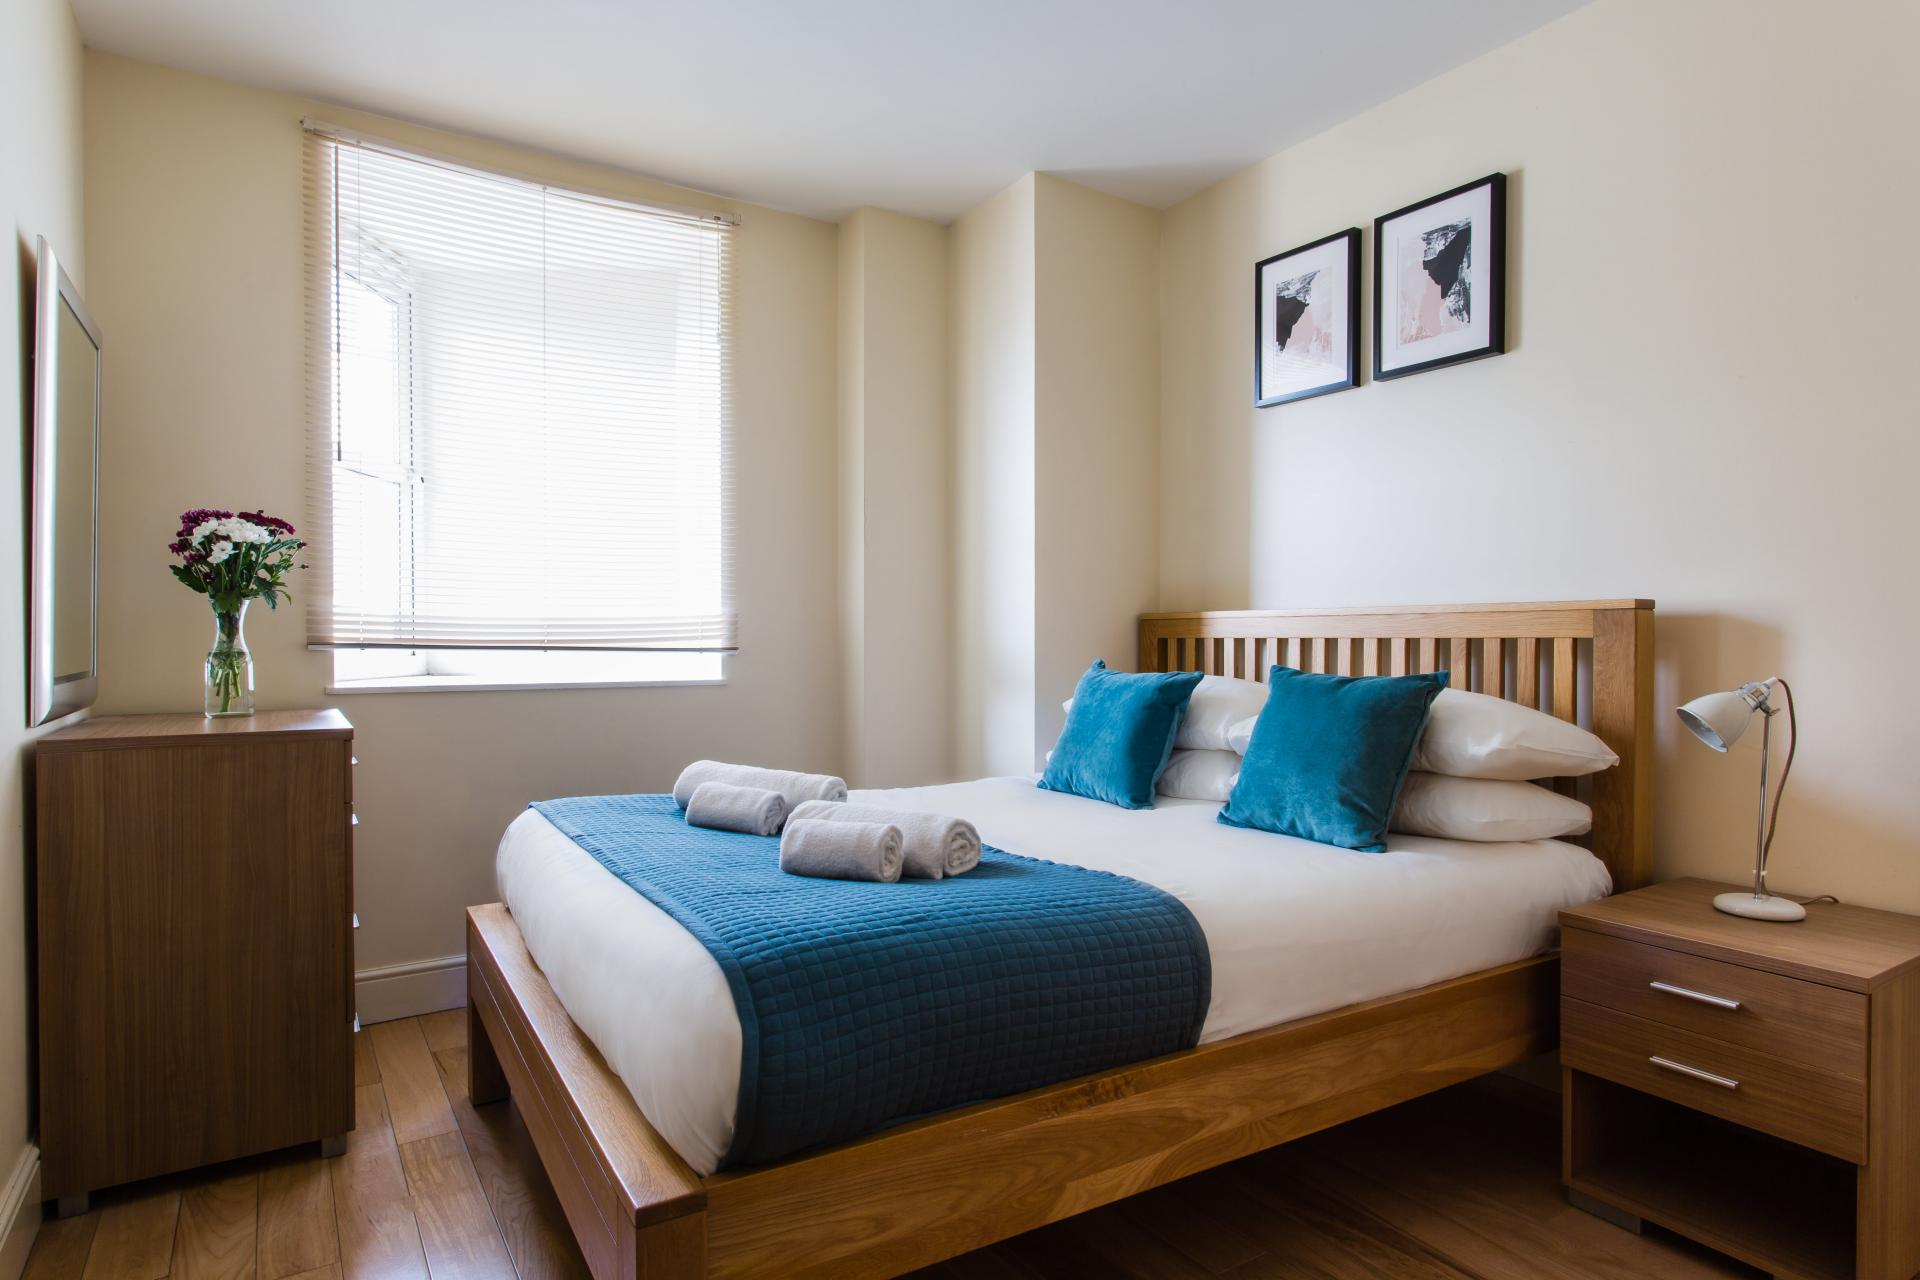 Bedroom at Reading Central Apartments, Centre, Reading - Citybase Apartments